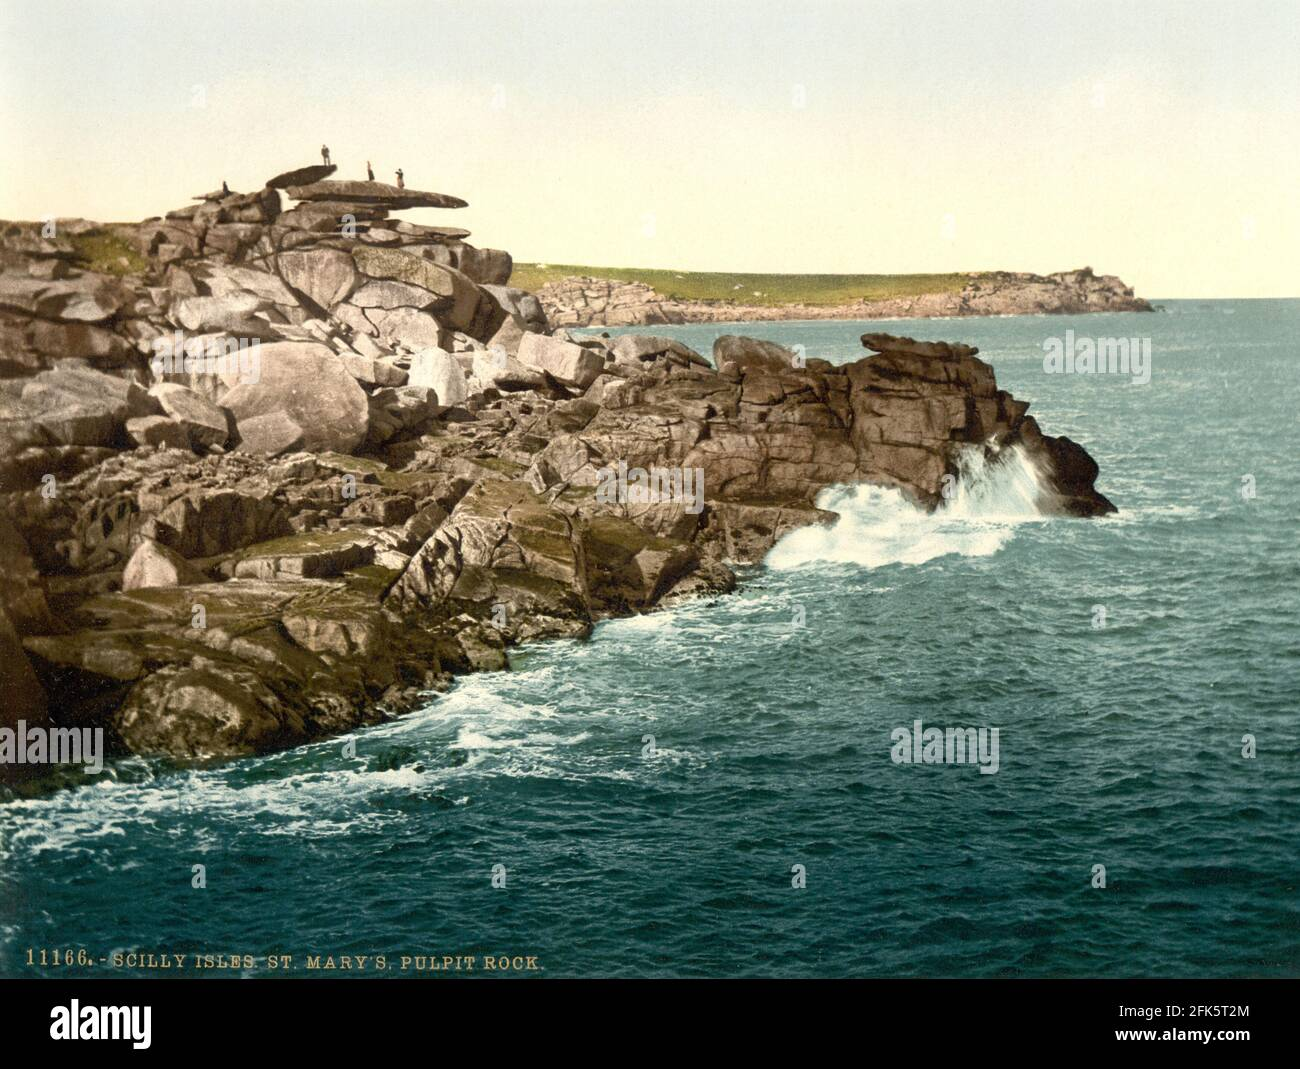 St Mary's Pulpit rock on The Scilly Isles circa 1890-1900 Stock Photo